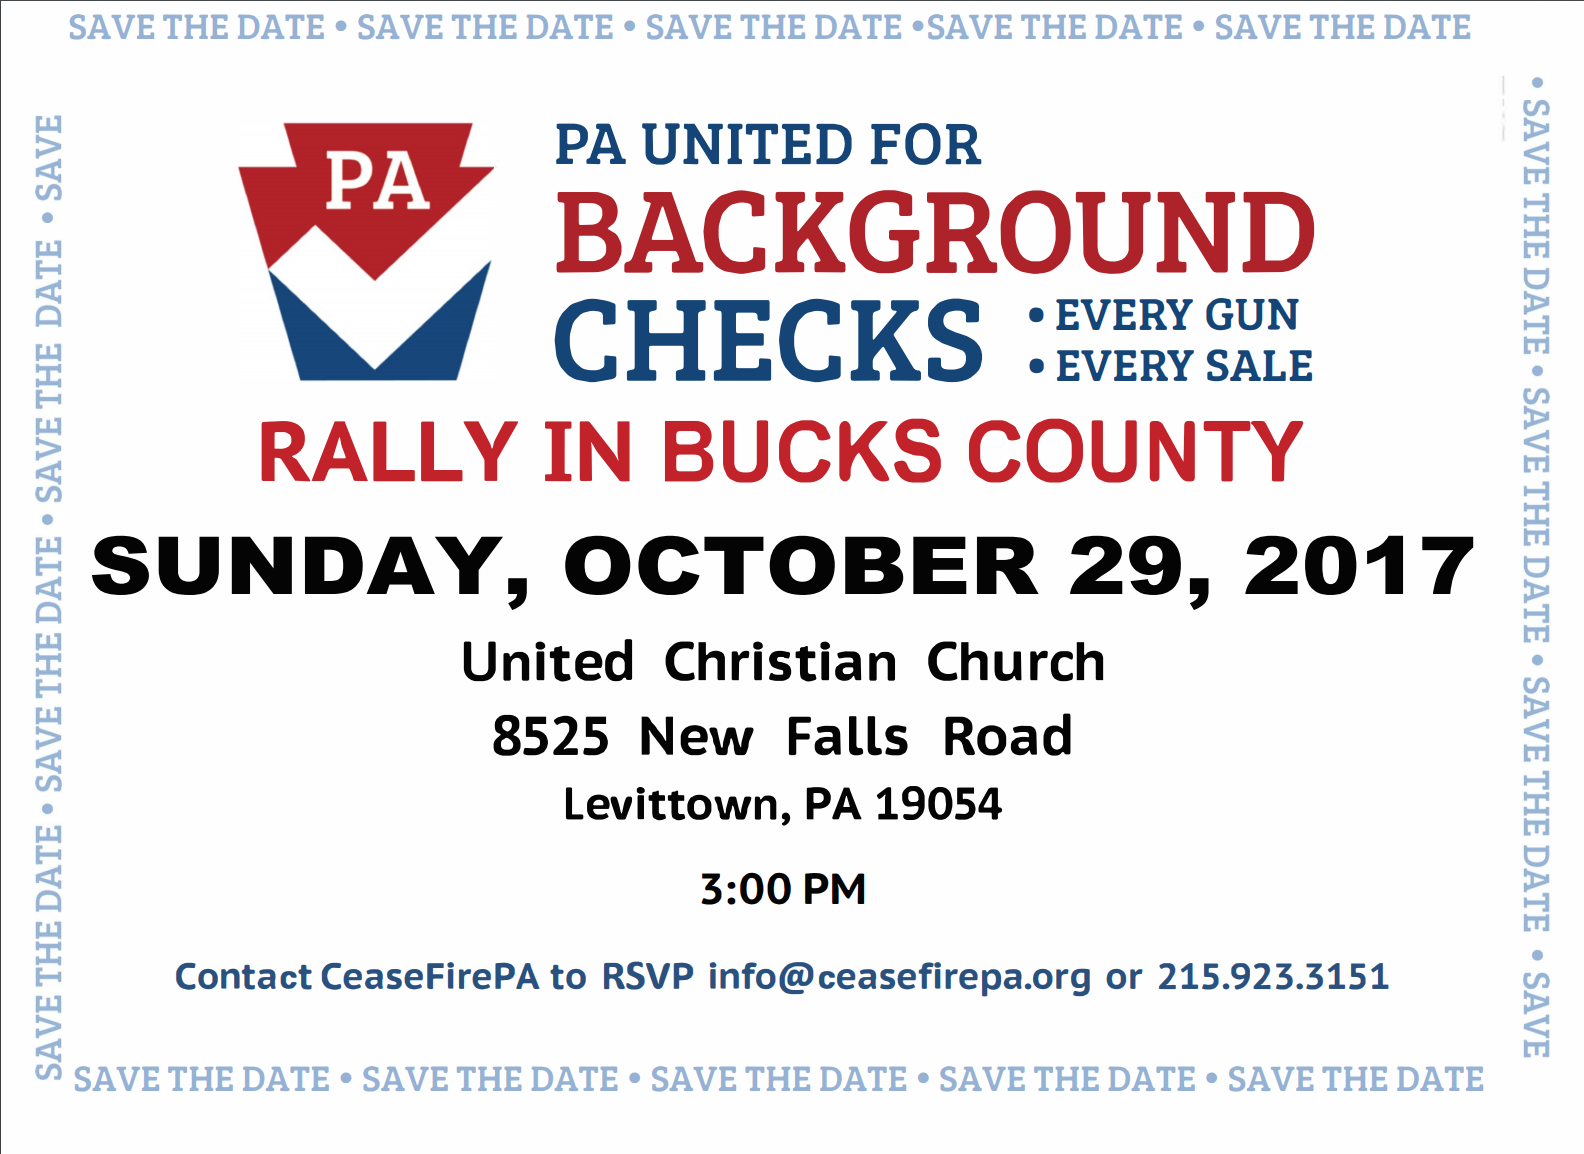 Universal Background Check Rally